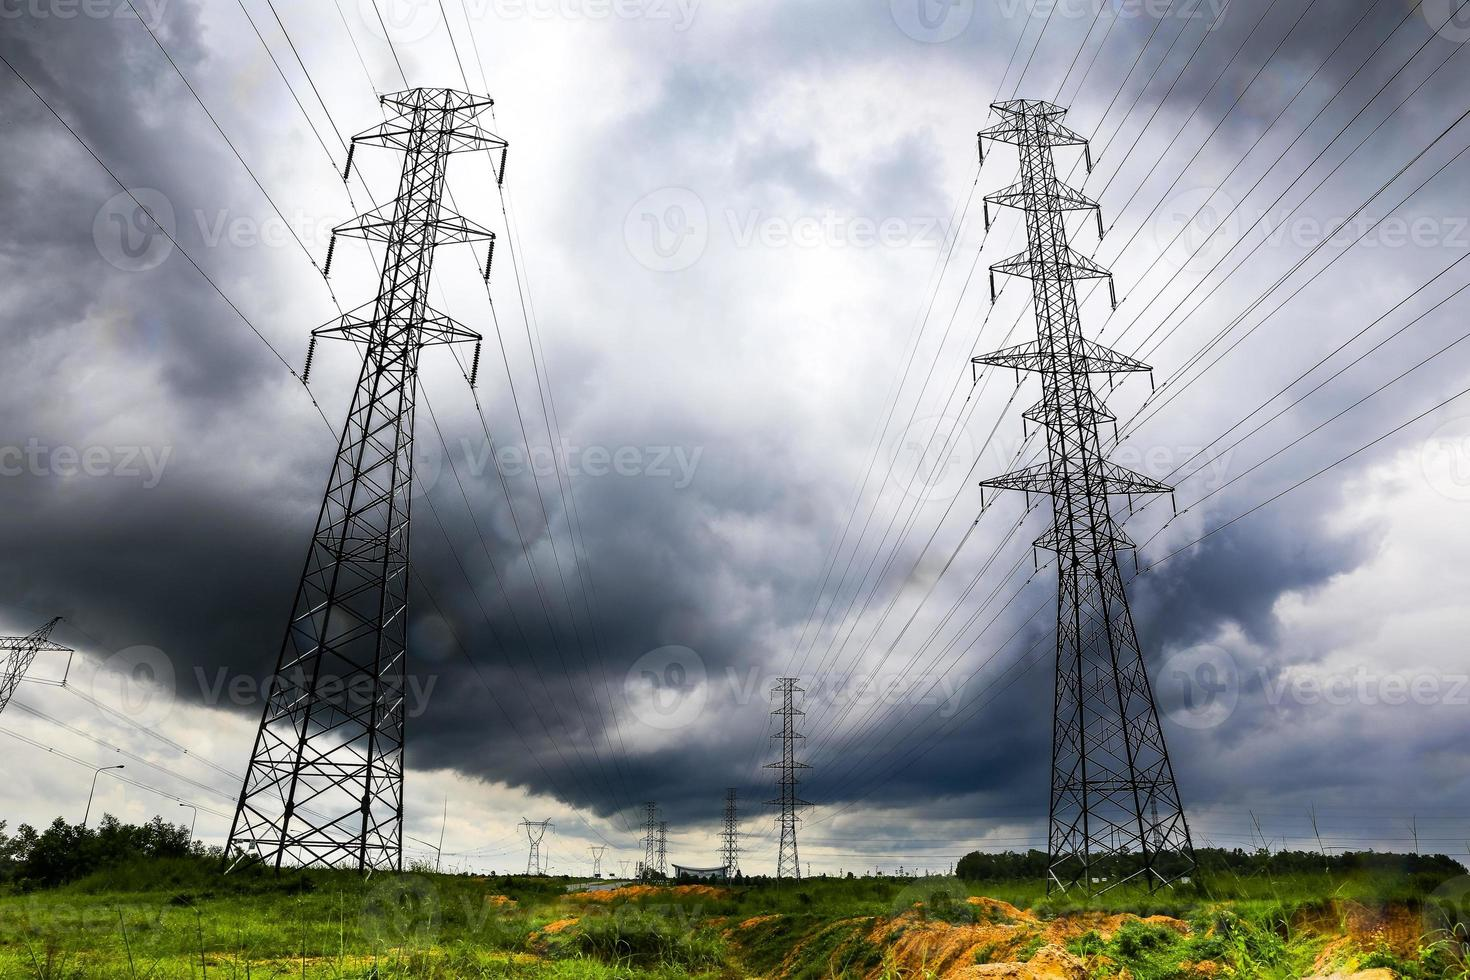 High-voltage power lines in storm photo